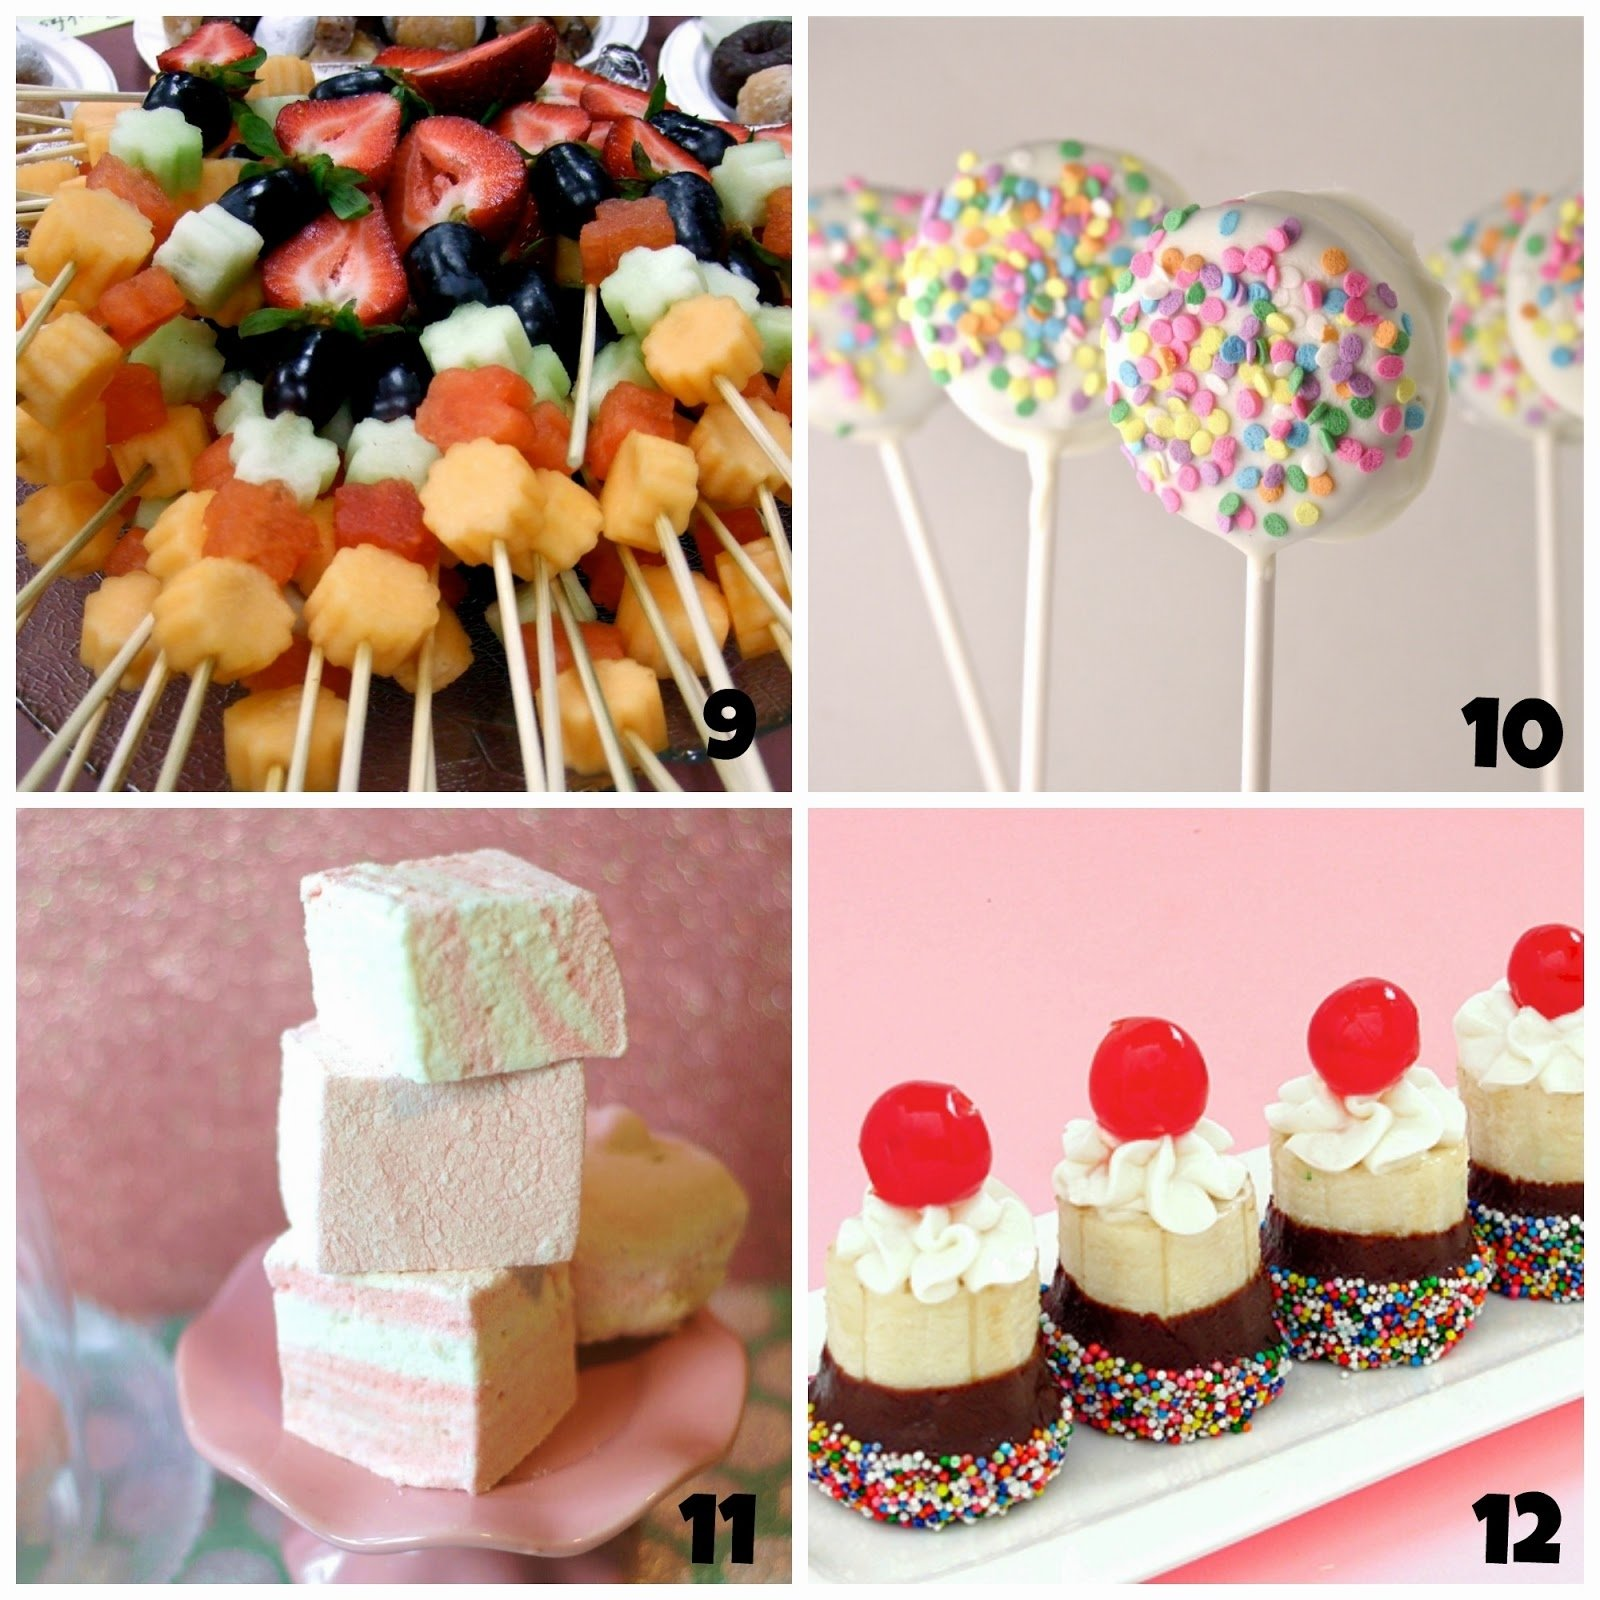 10 Beautiful Party Food Ideas For Kids whats on 4 kids parties 12 awesome party food ideas 3 2020